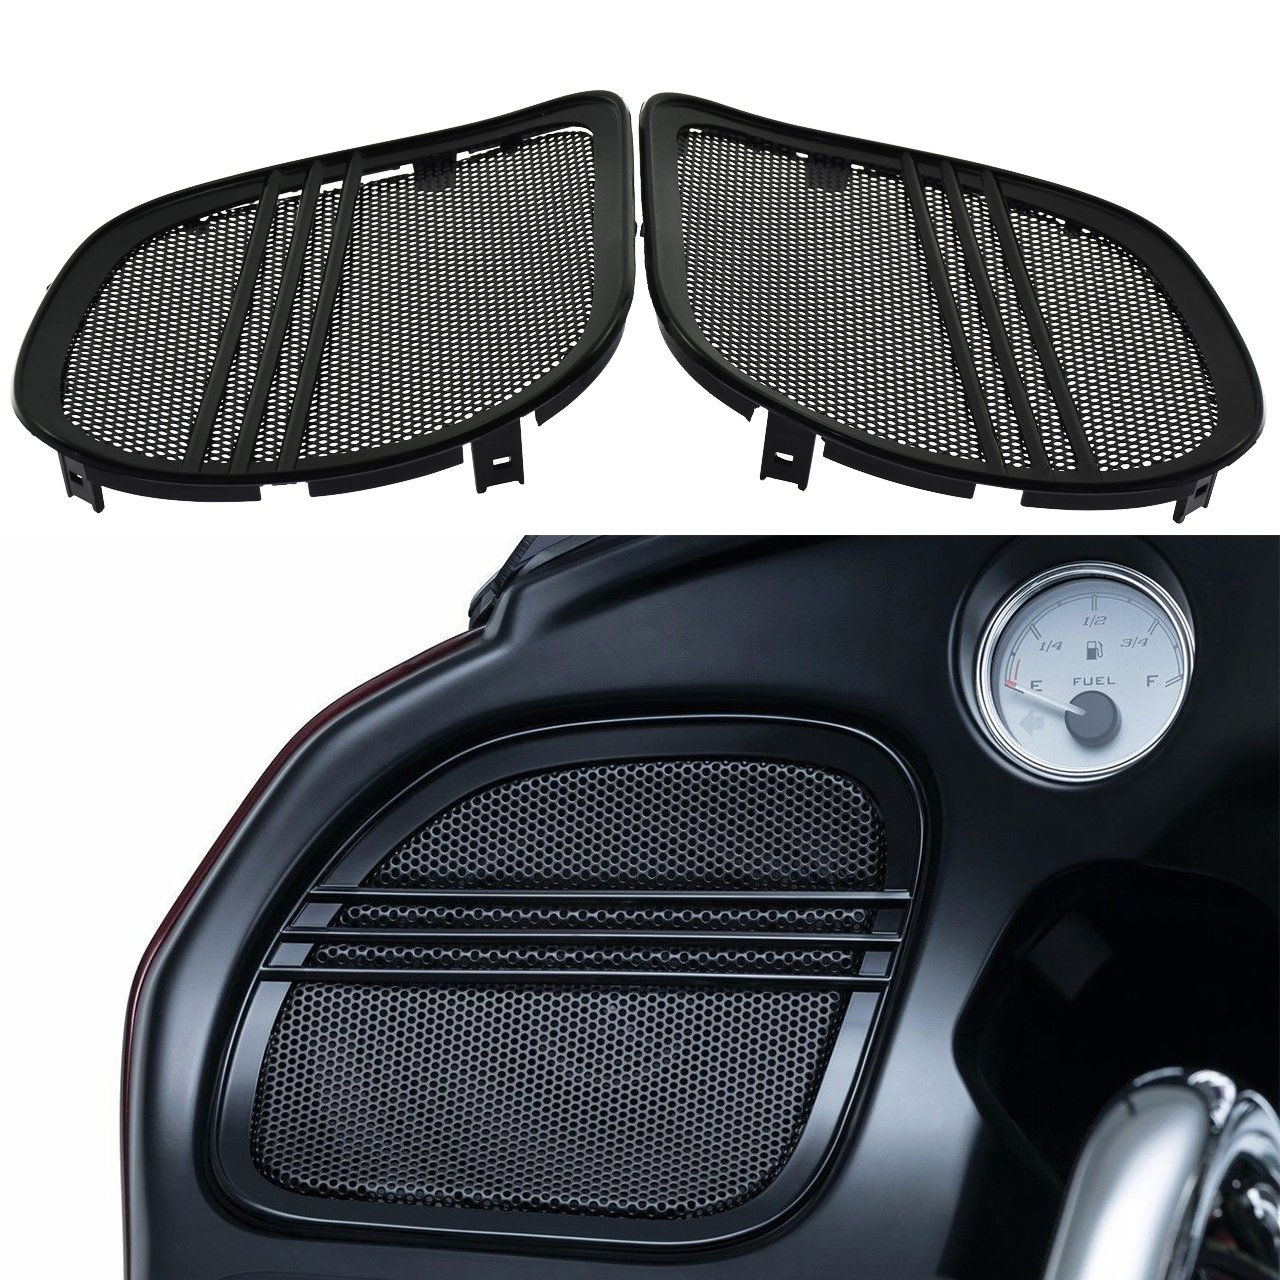 Rebacker Motorbike Tri-Line Speaker Grills Cover Trim Mesh For Harley Road Glide FLTRX 2015 2016 2017 2018,Black